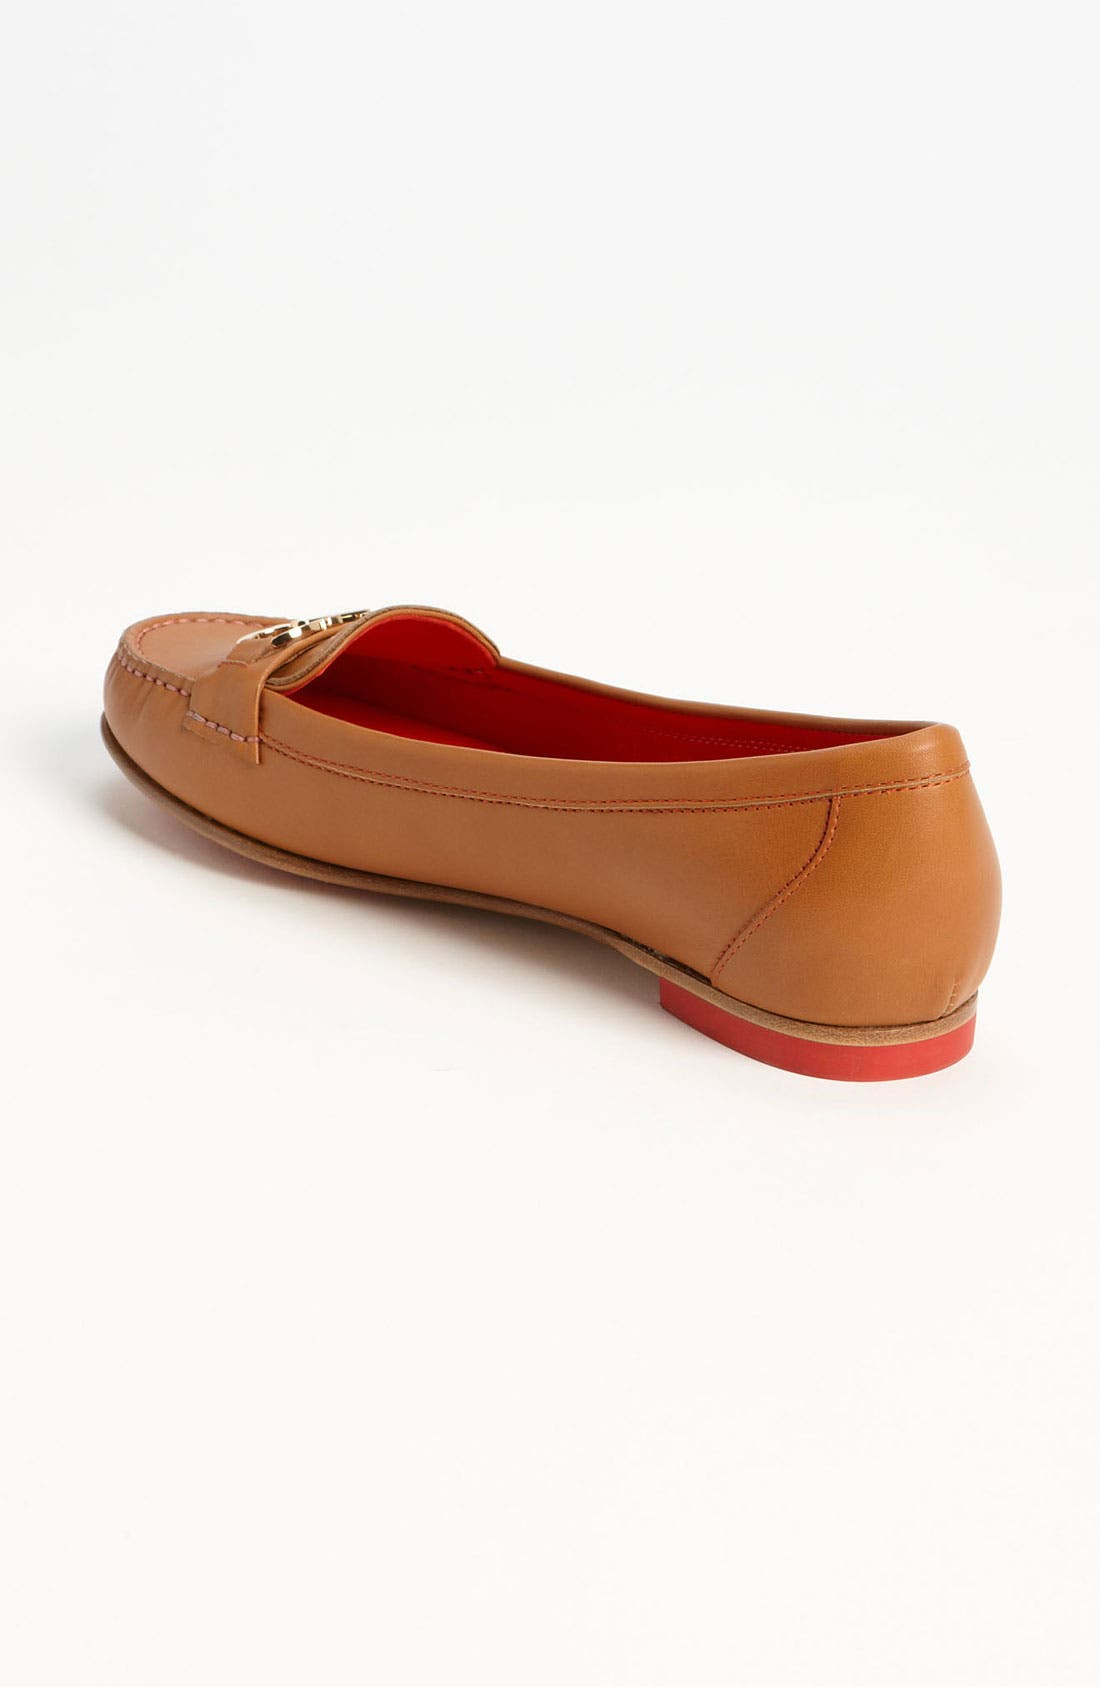 Alternate Image 2  - Salvatore Ferragamo 'Simba' Loafer